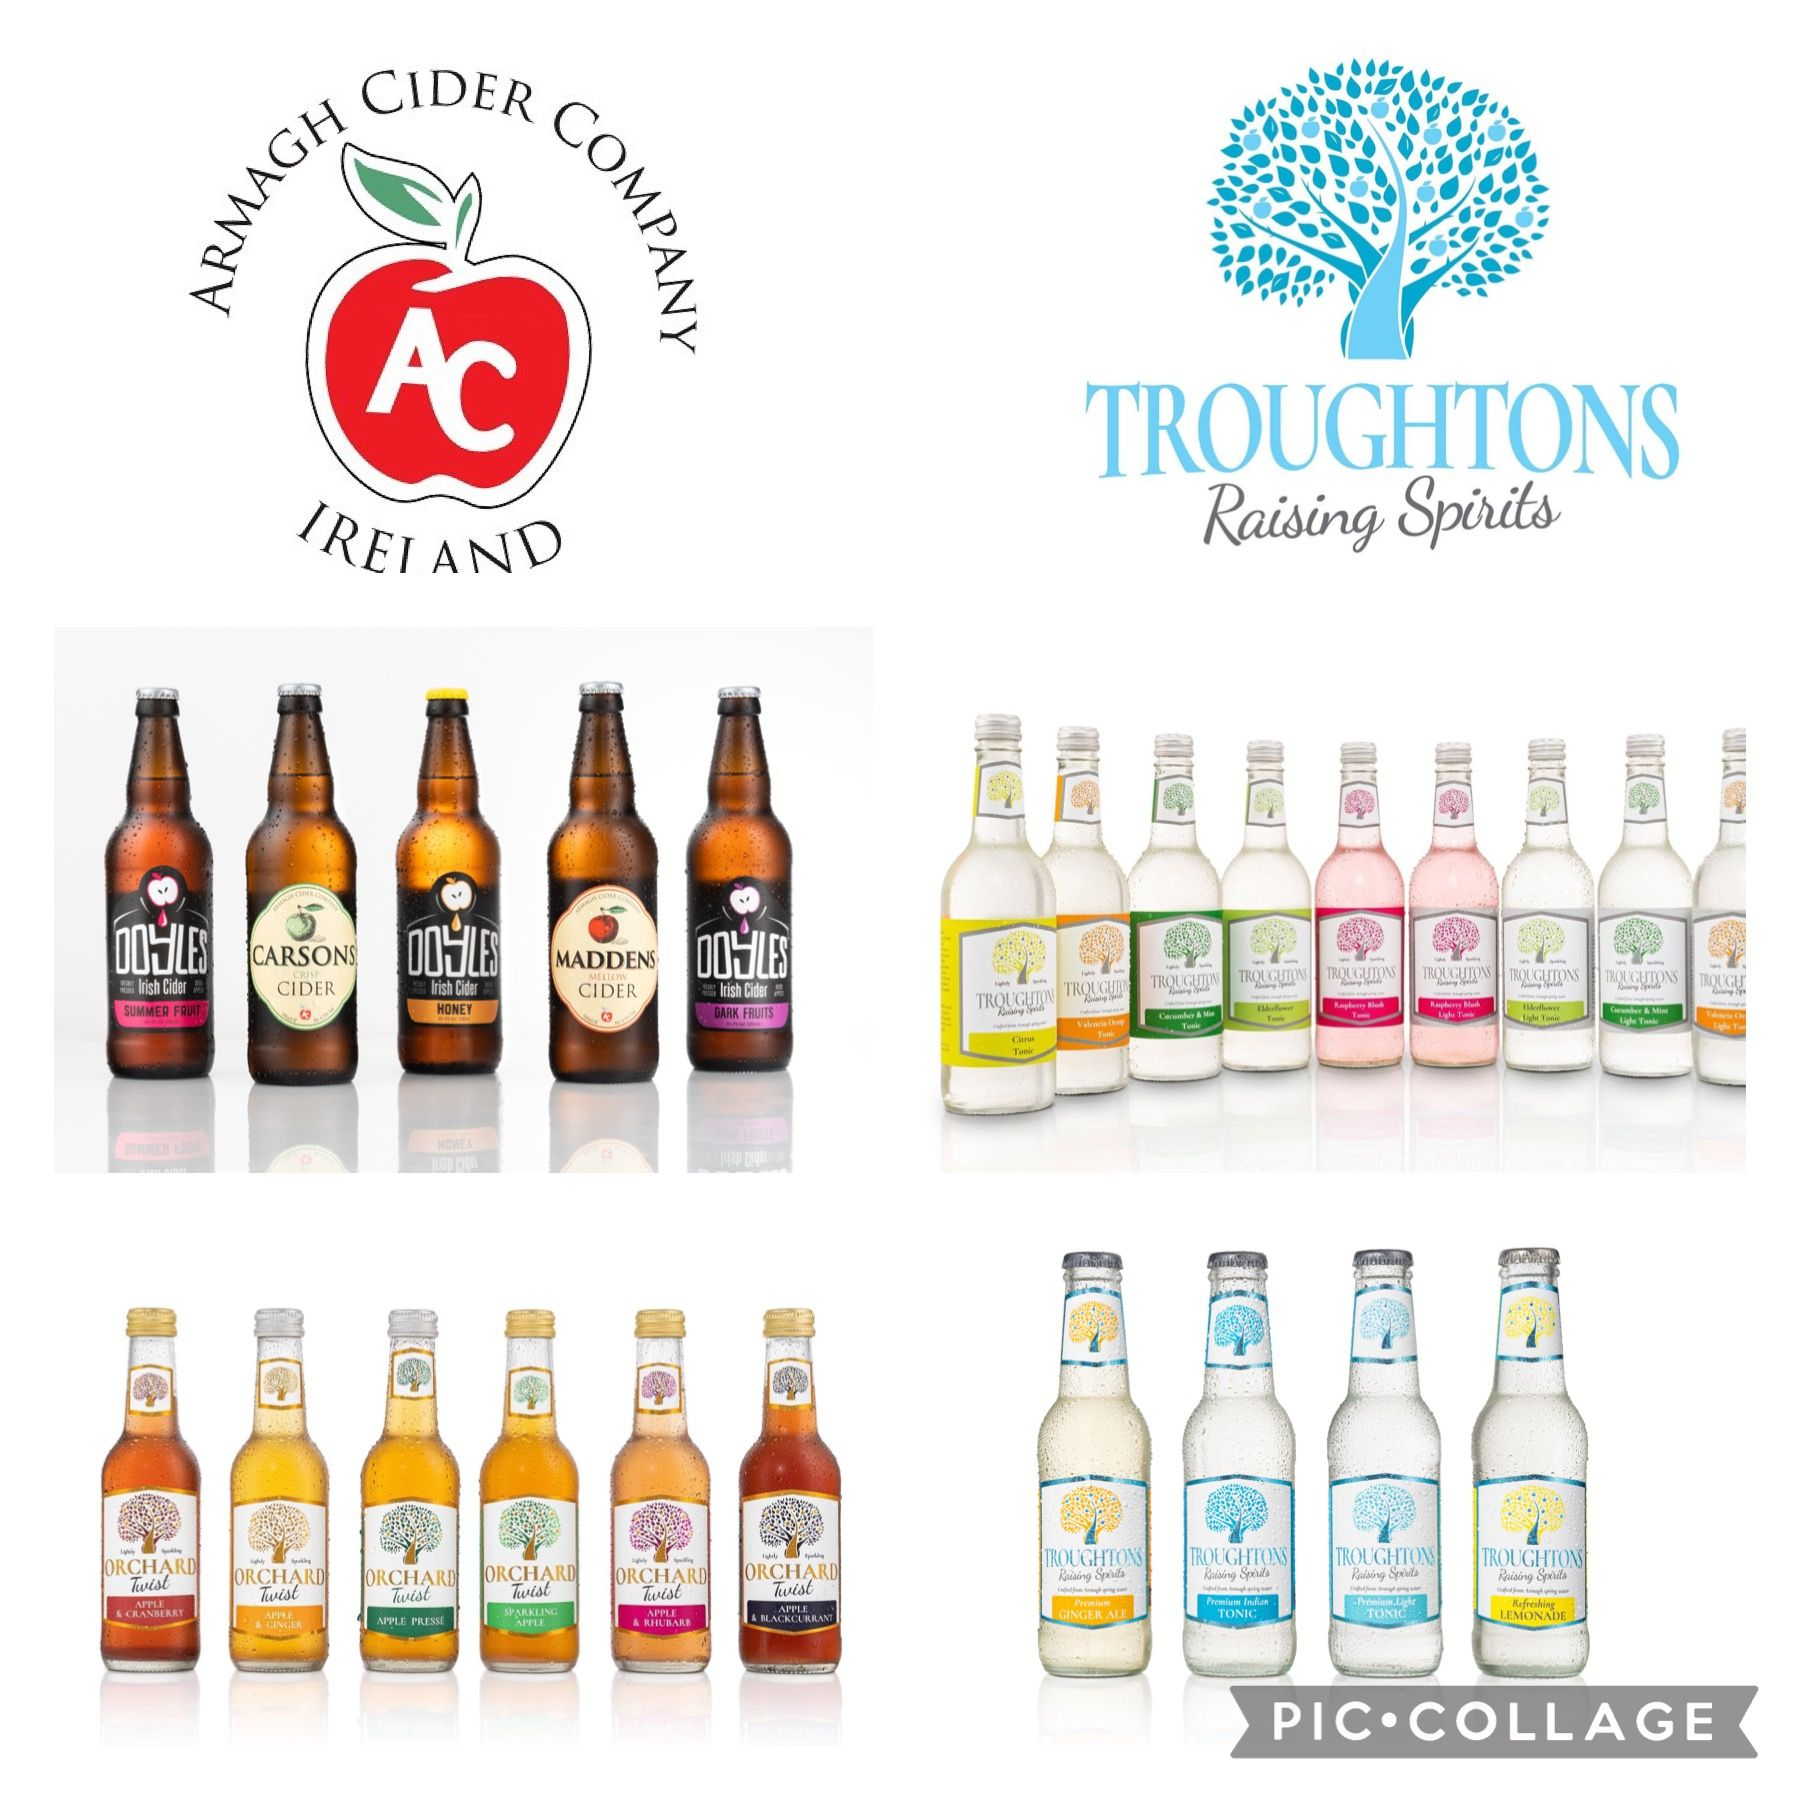 Armagh Cider Company & Troughtons Premium